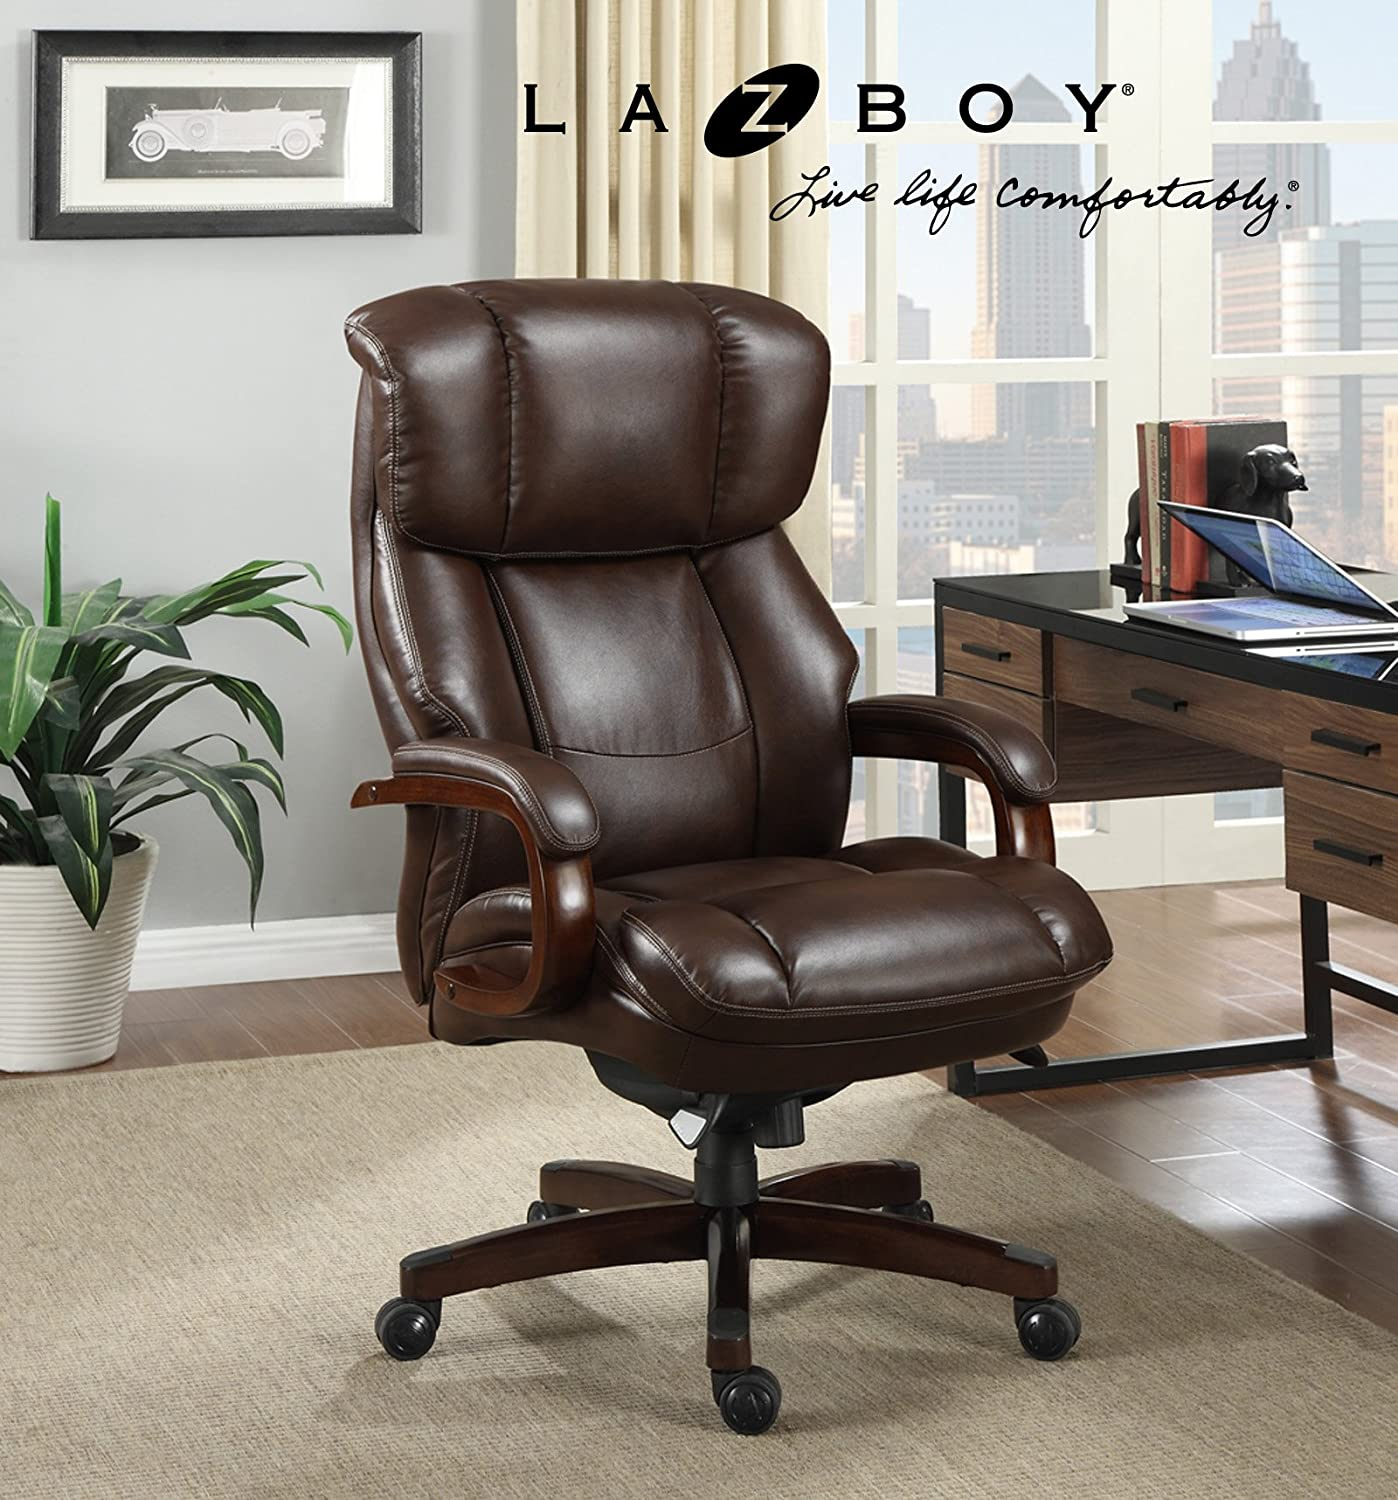 Amazon La Z Boy Fairmont Big & Tall Executive Bonded Leather